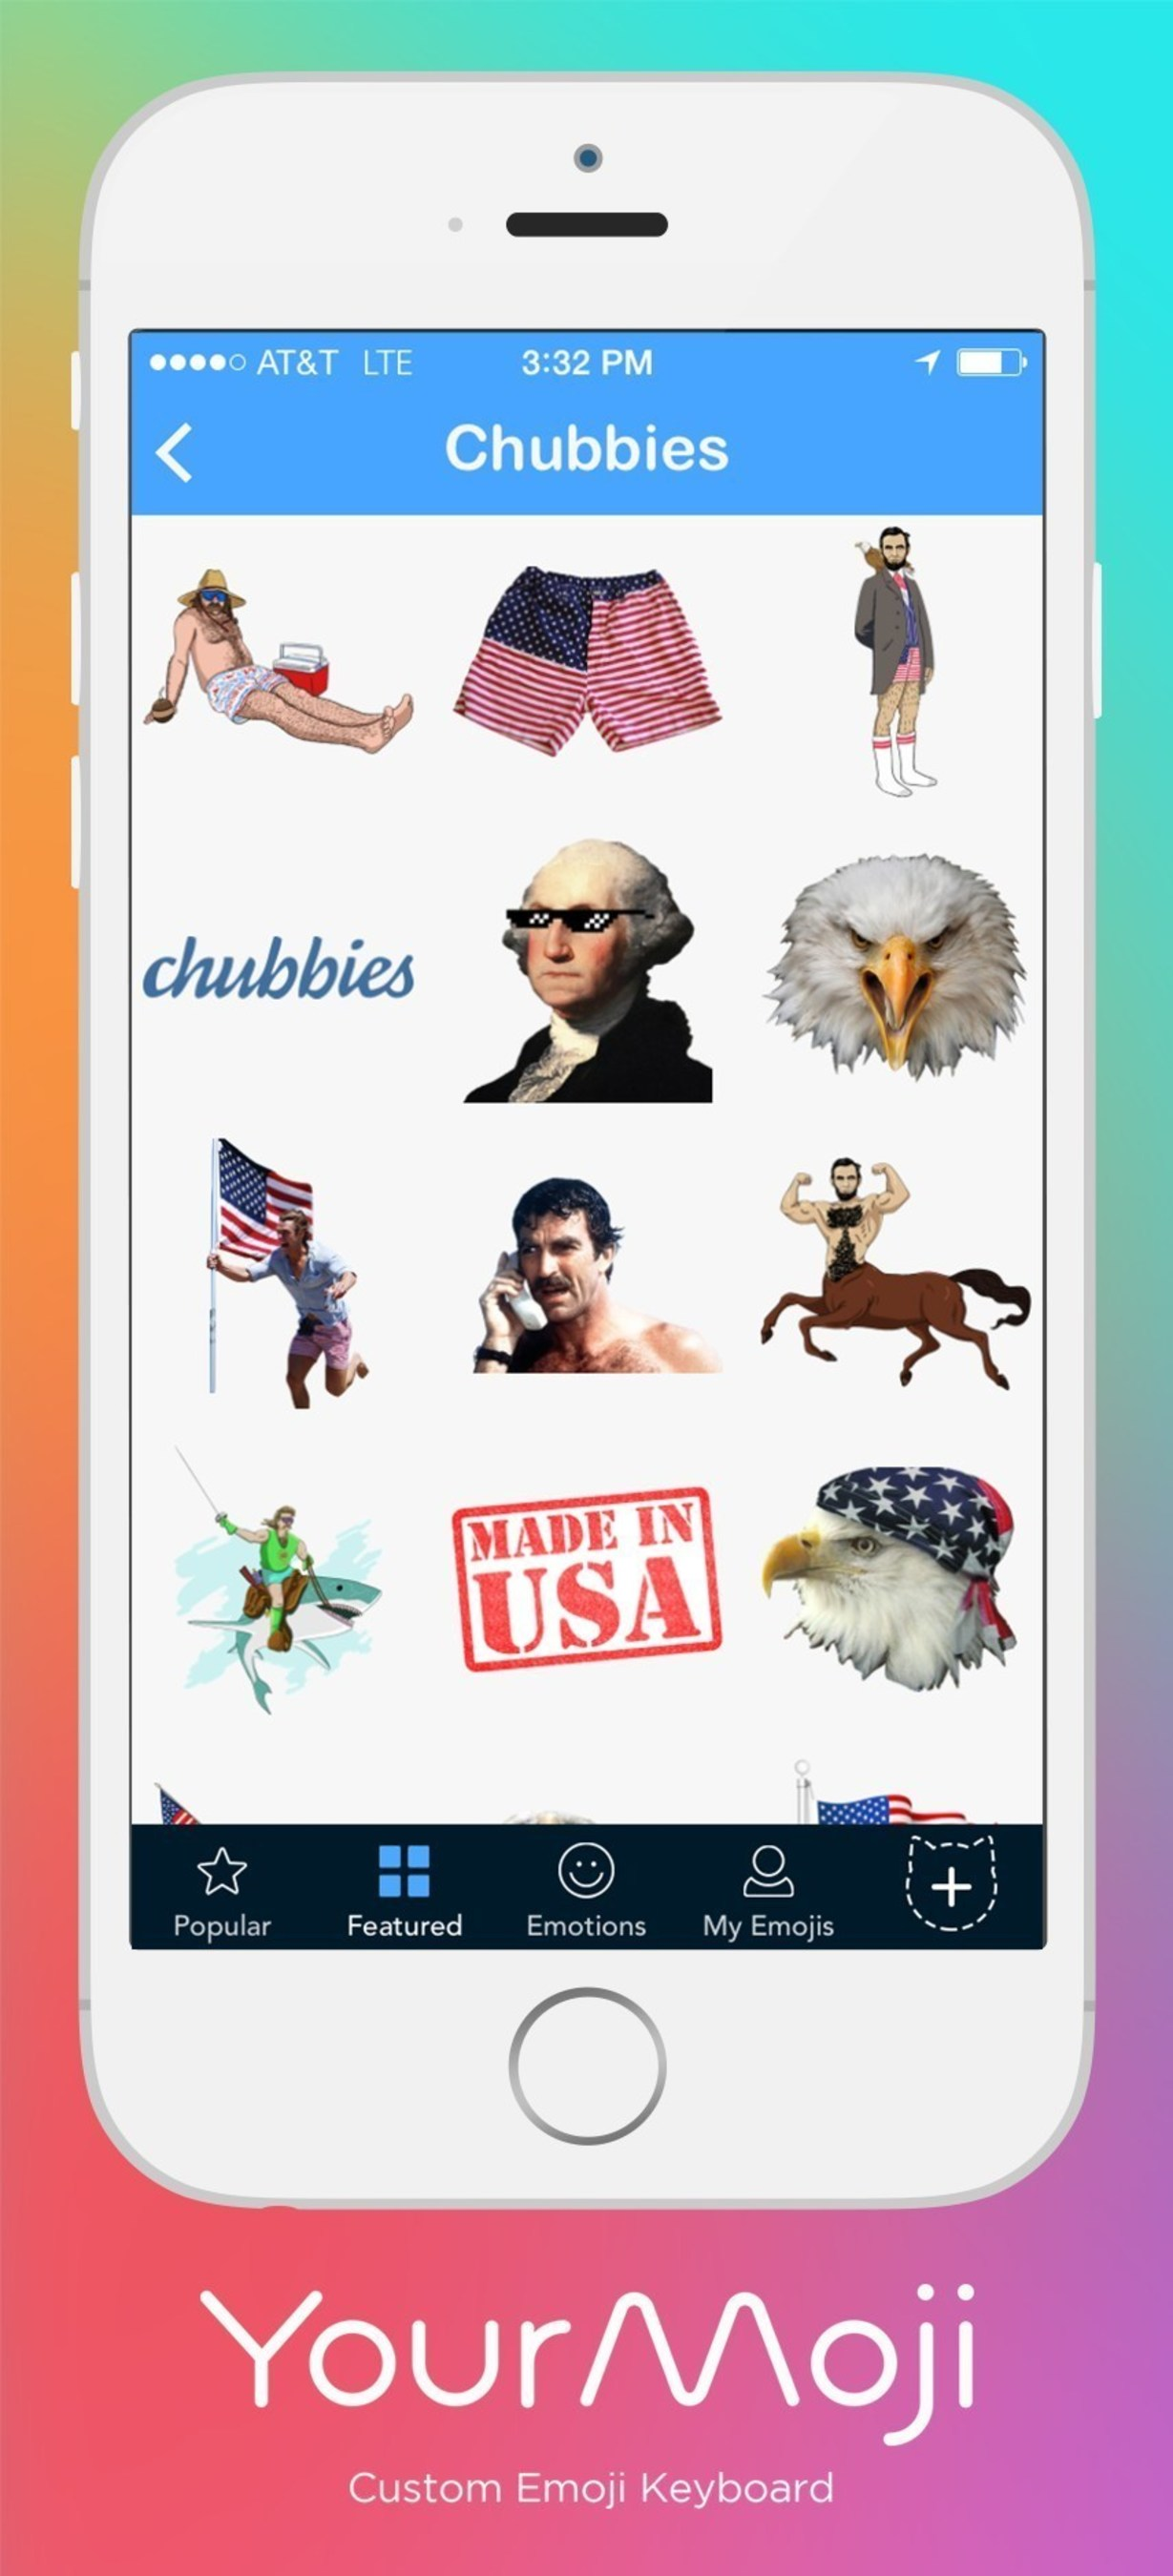 Get emojis from your favorite brands with YourMoji!